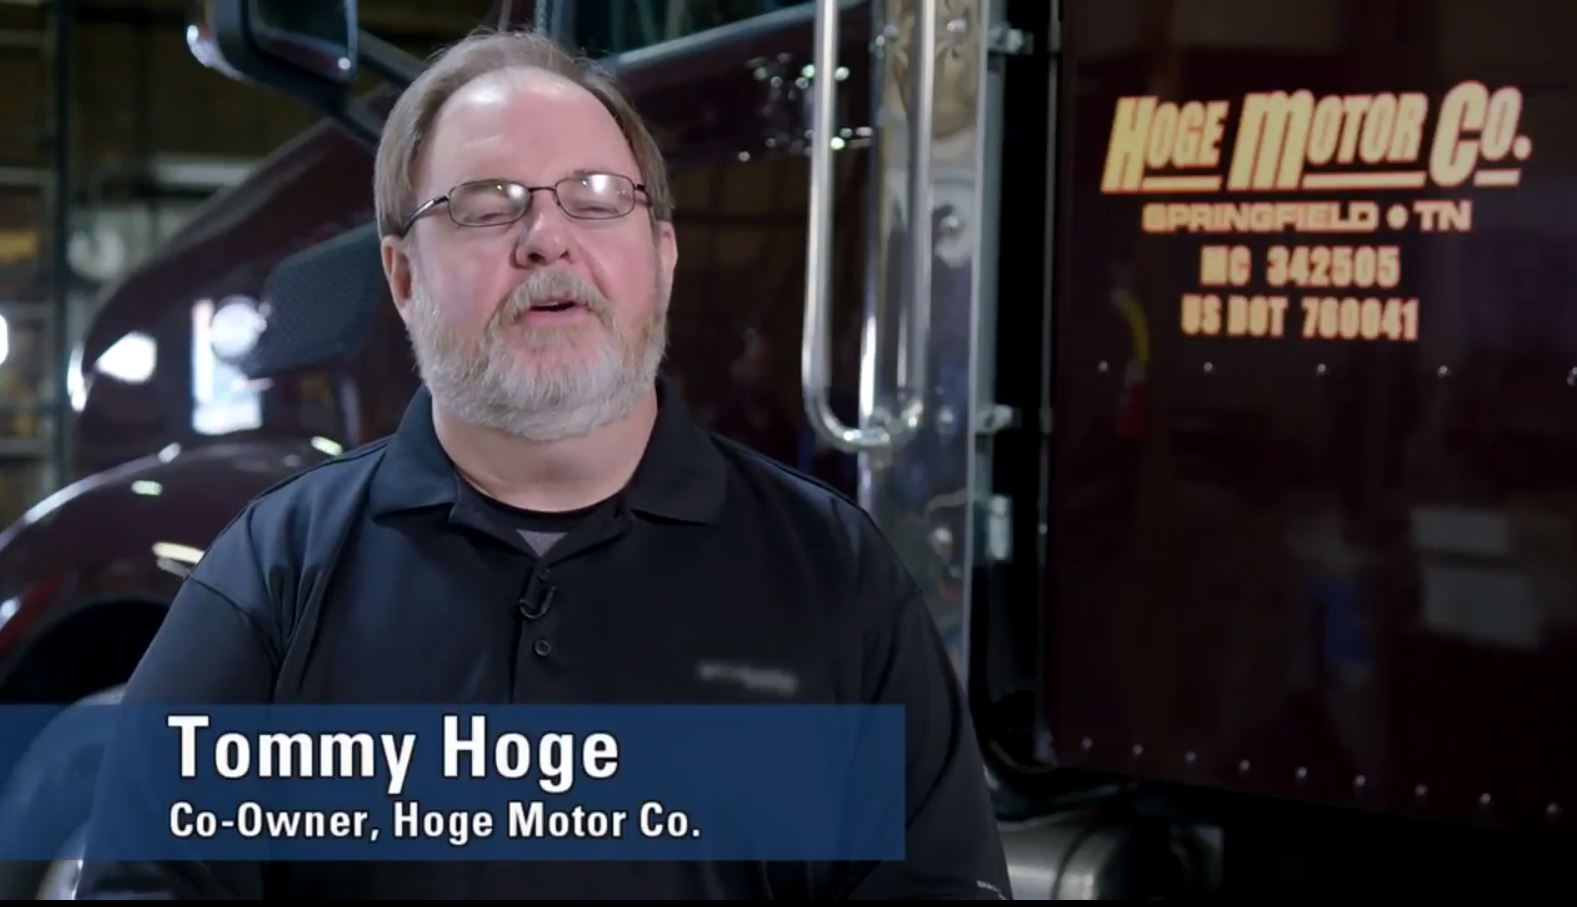 Tommy Hoge, Co-Owner, Hoge Motor Co